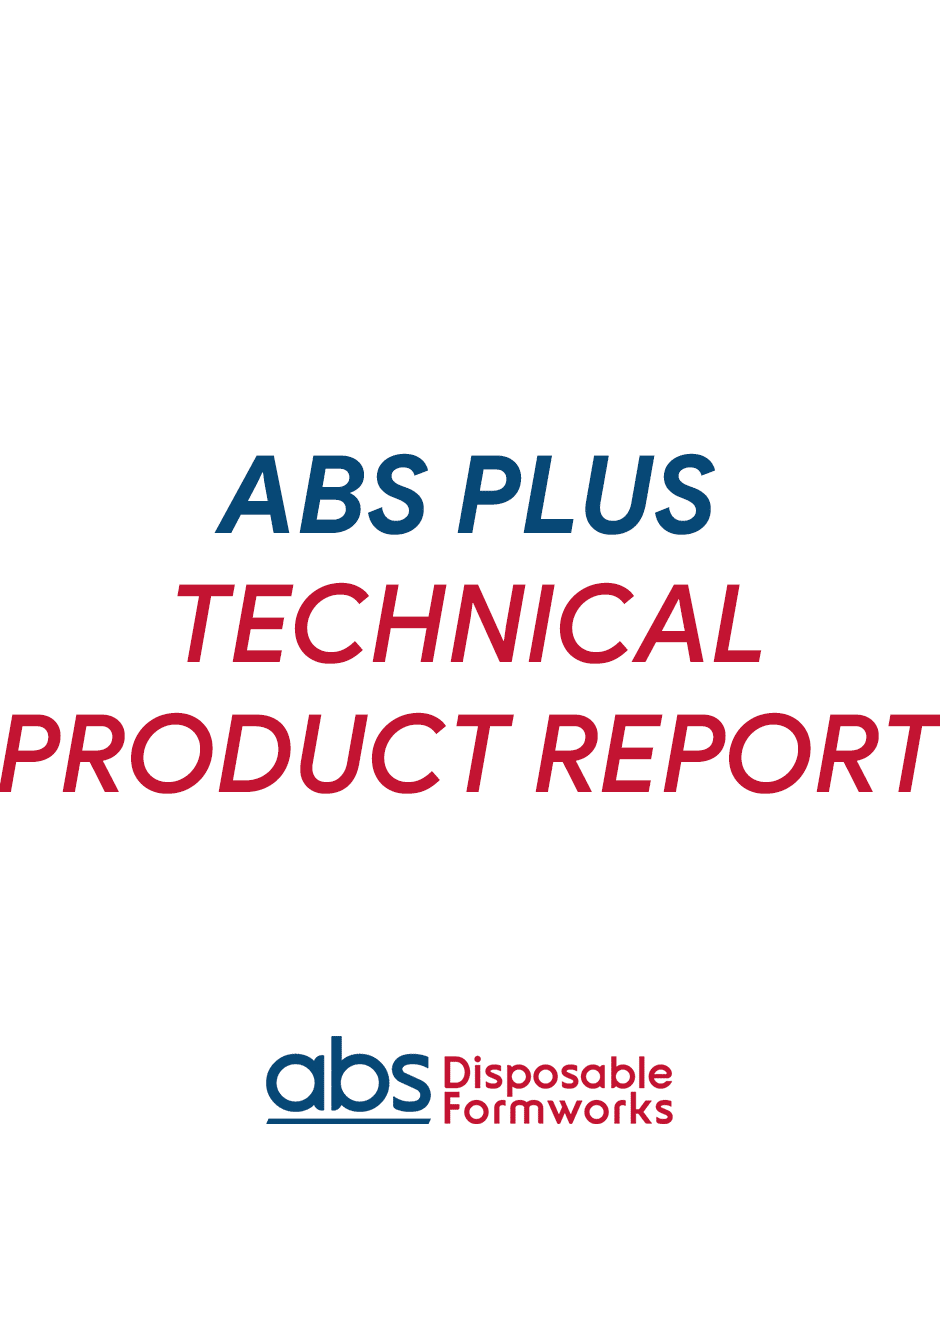 abs_plus_technical_product_report